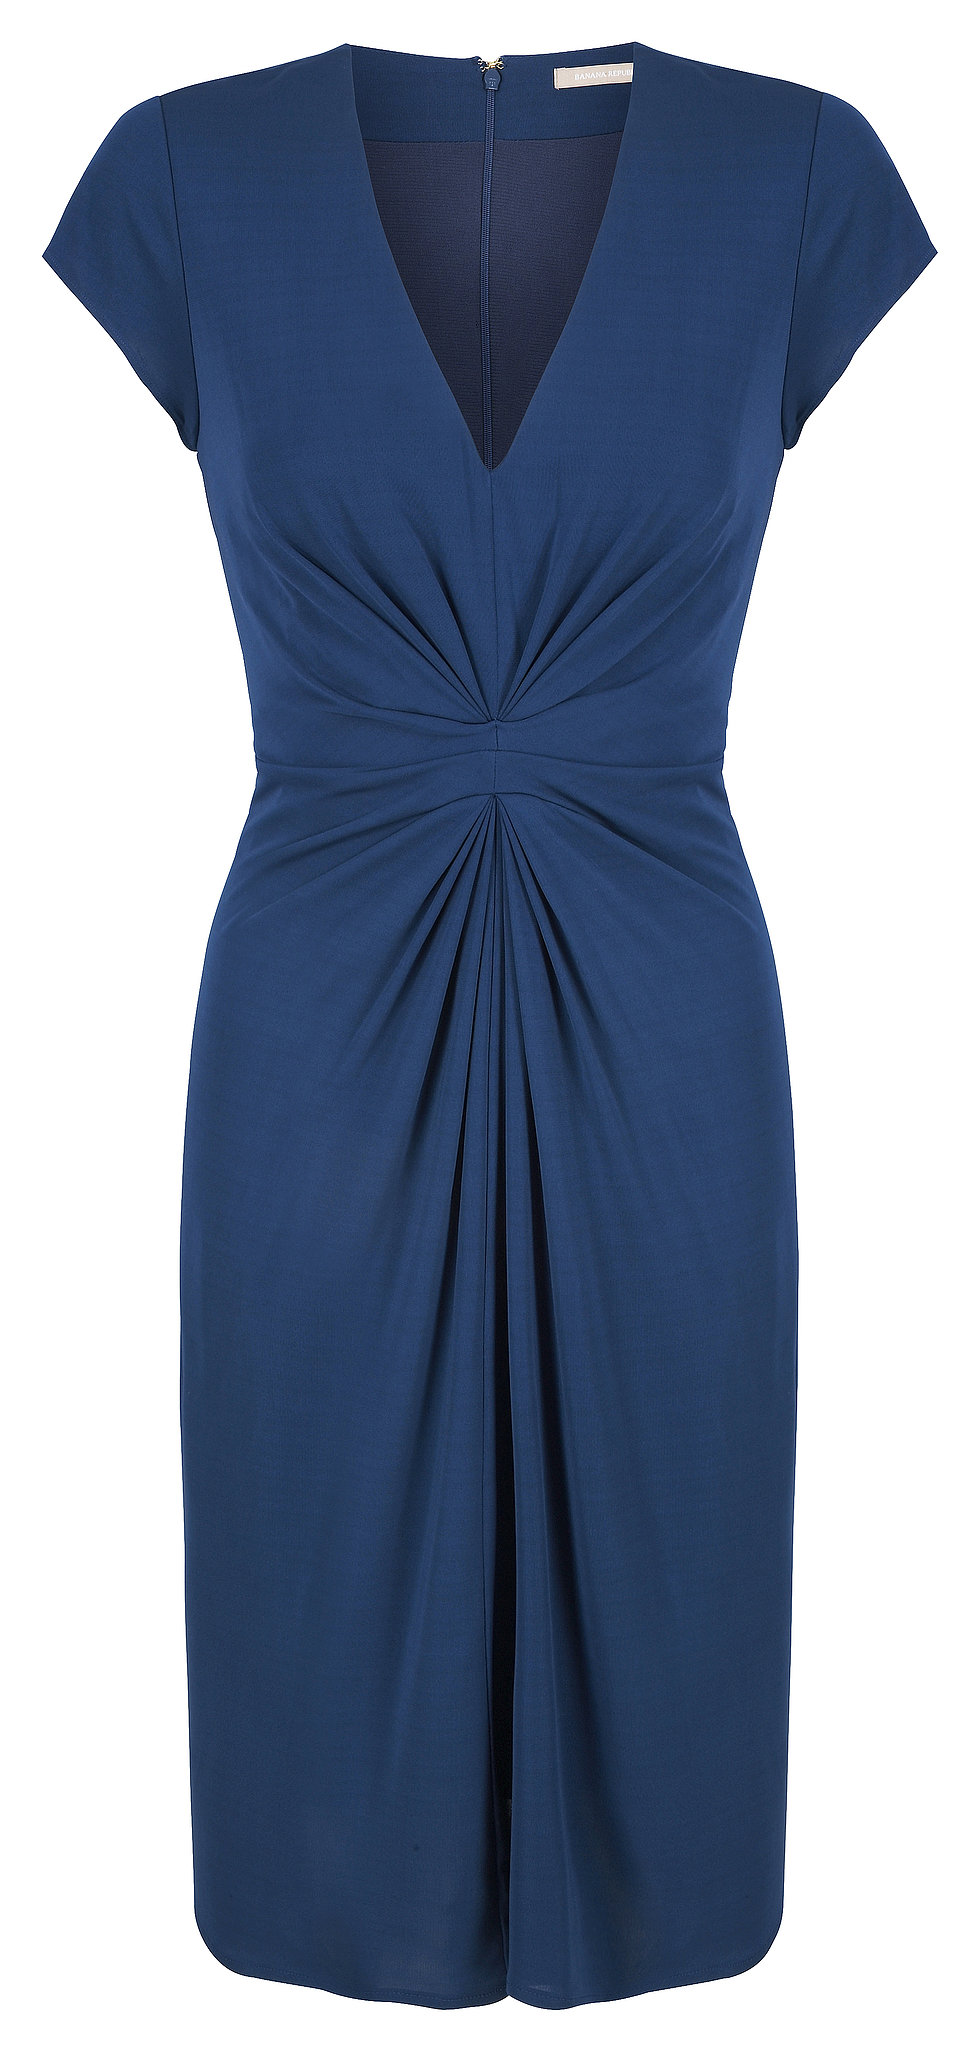 With a similar midsection twist, this jewel-toned blue sheath ($130) is a smart work-ready buy. Photo courtesy of Banana Republic